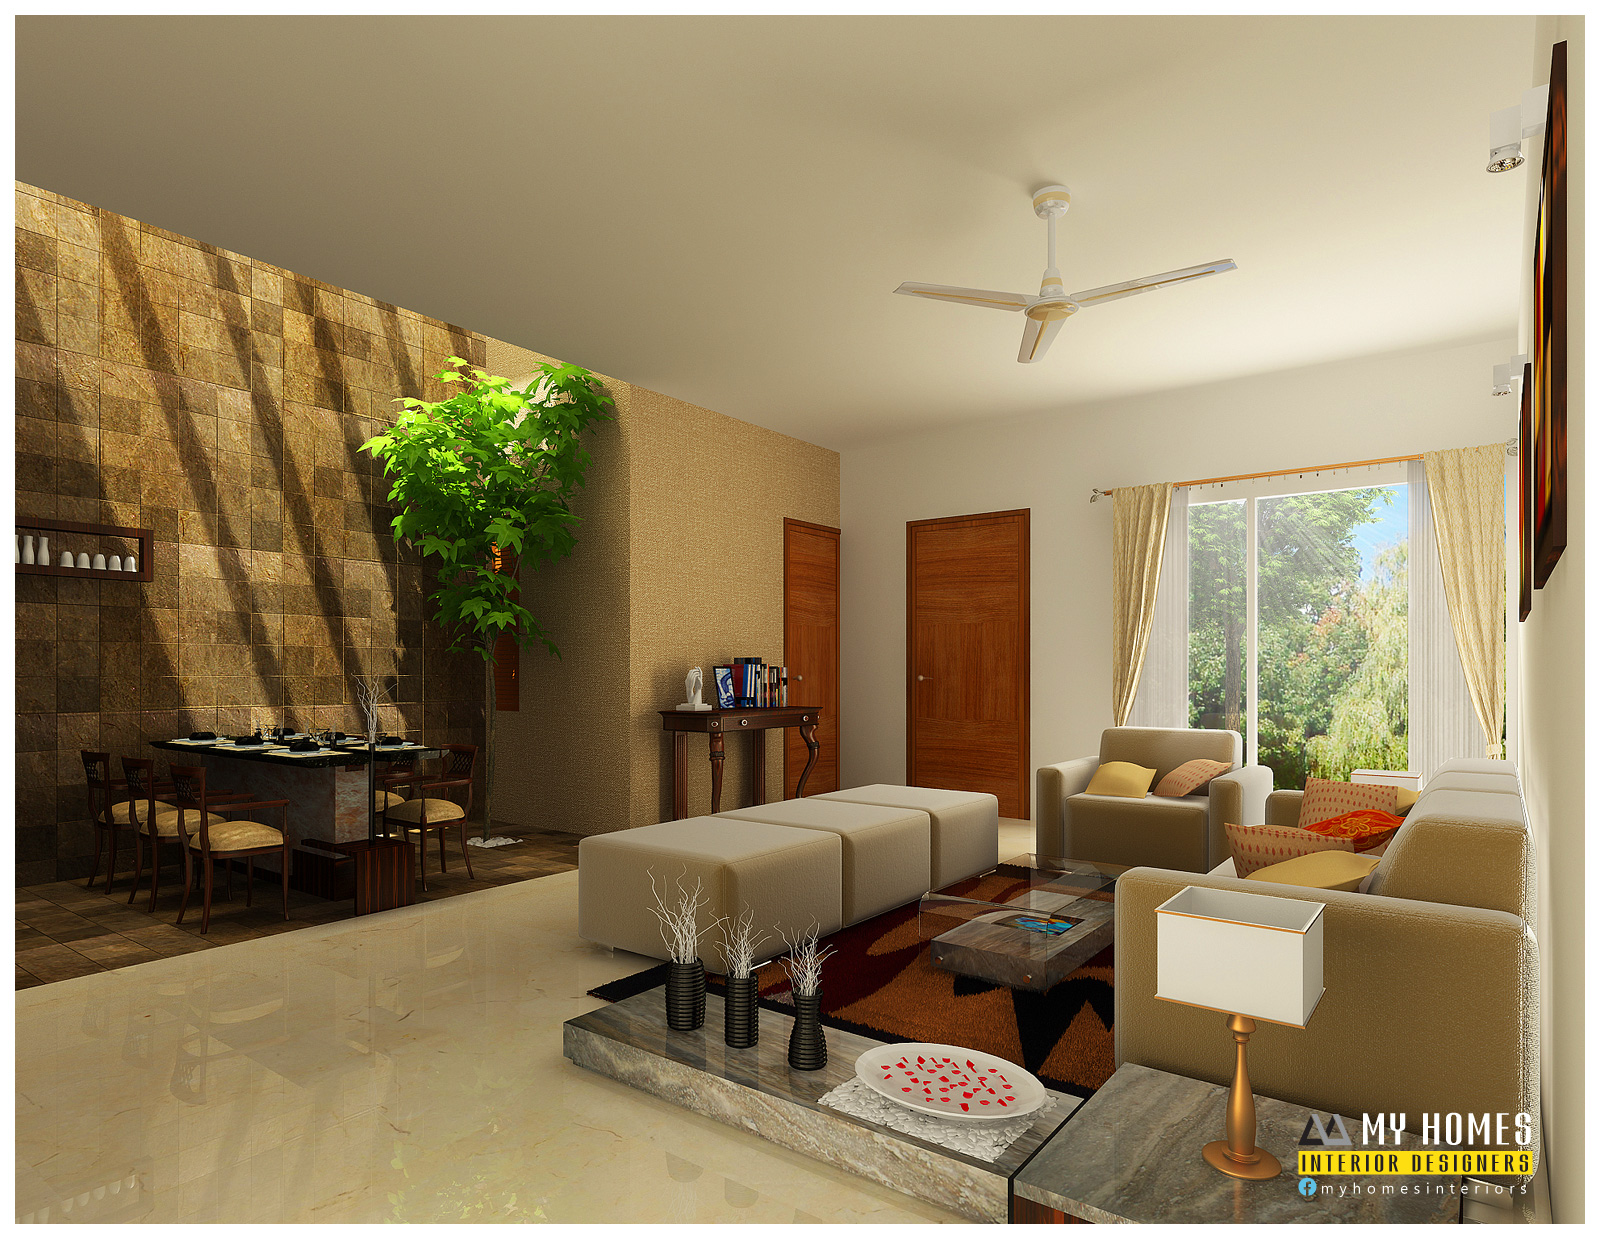 Kerala interior design ideas from designing company thrissur for Interior designs in home